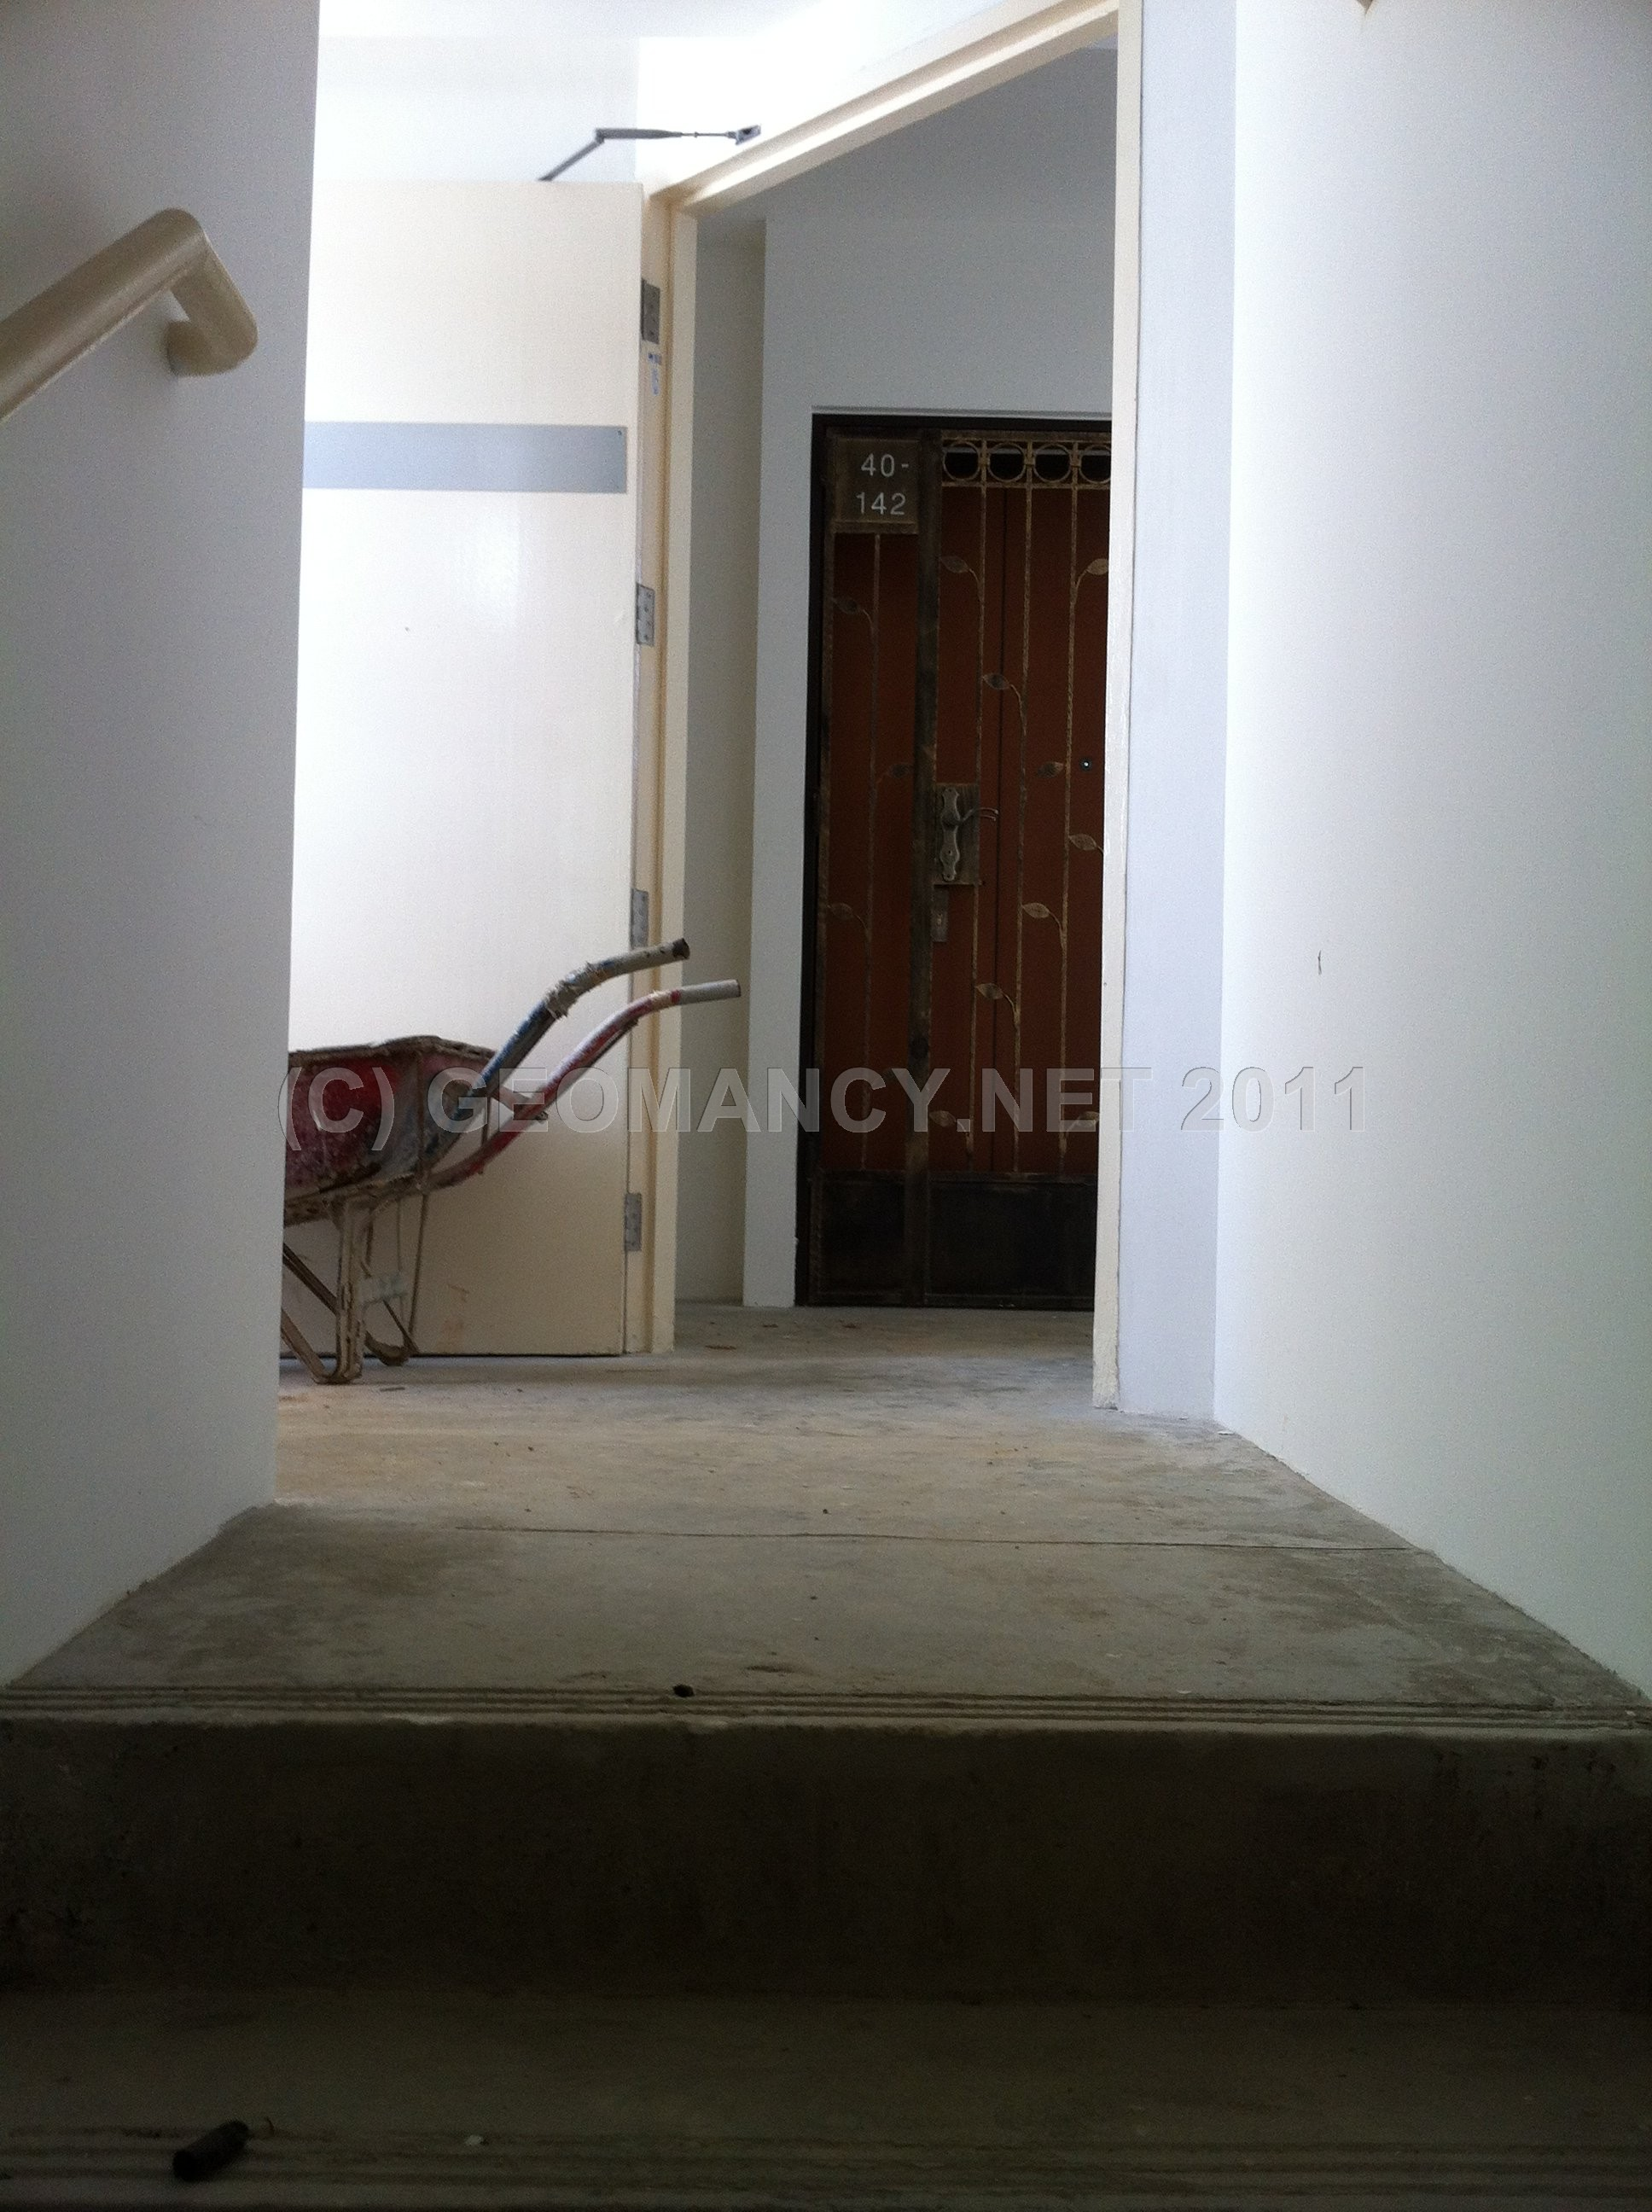 Main Entrance Door facing staircase (stairs) - Feng Shui Tips & Guideline...